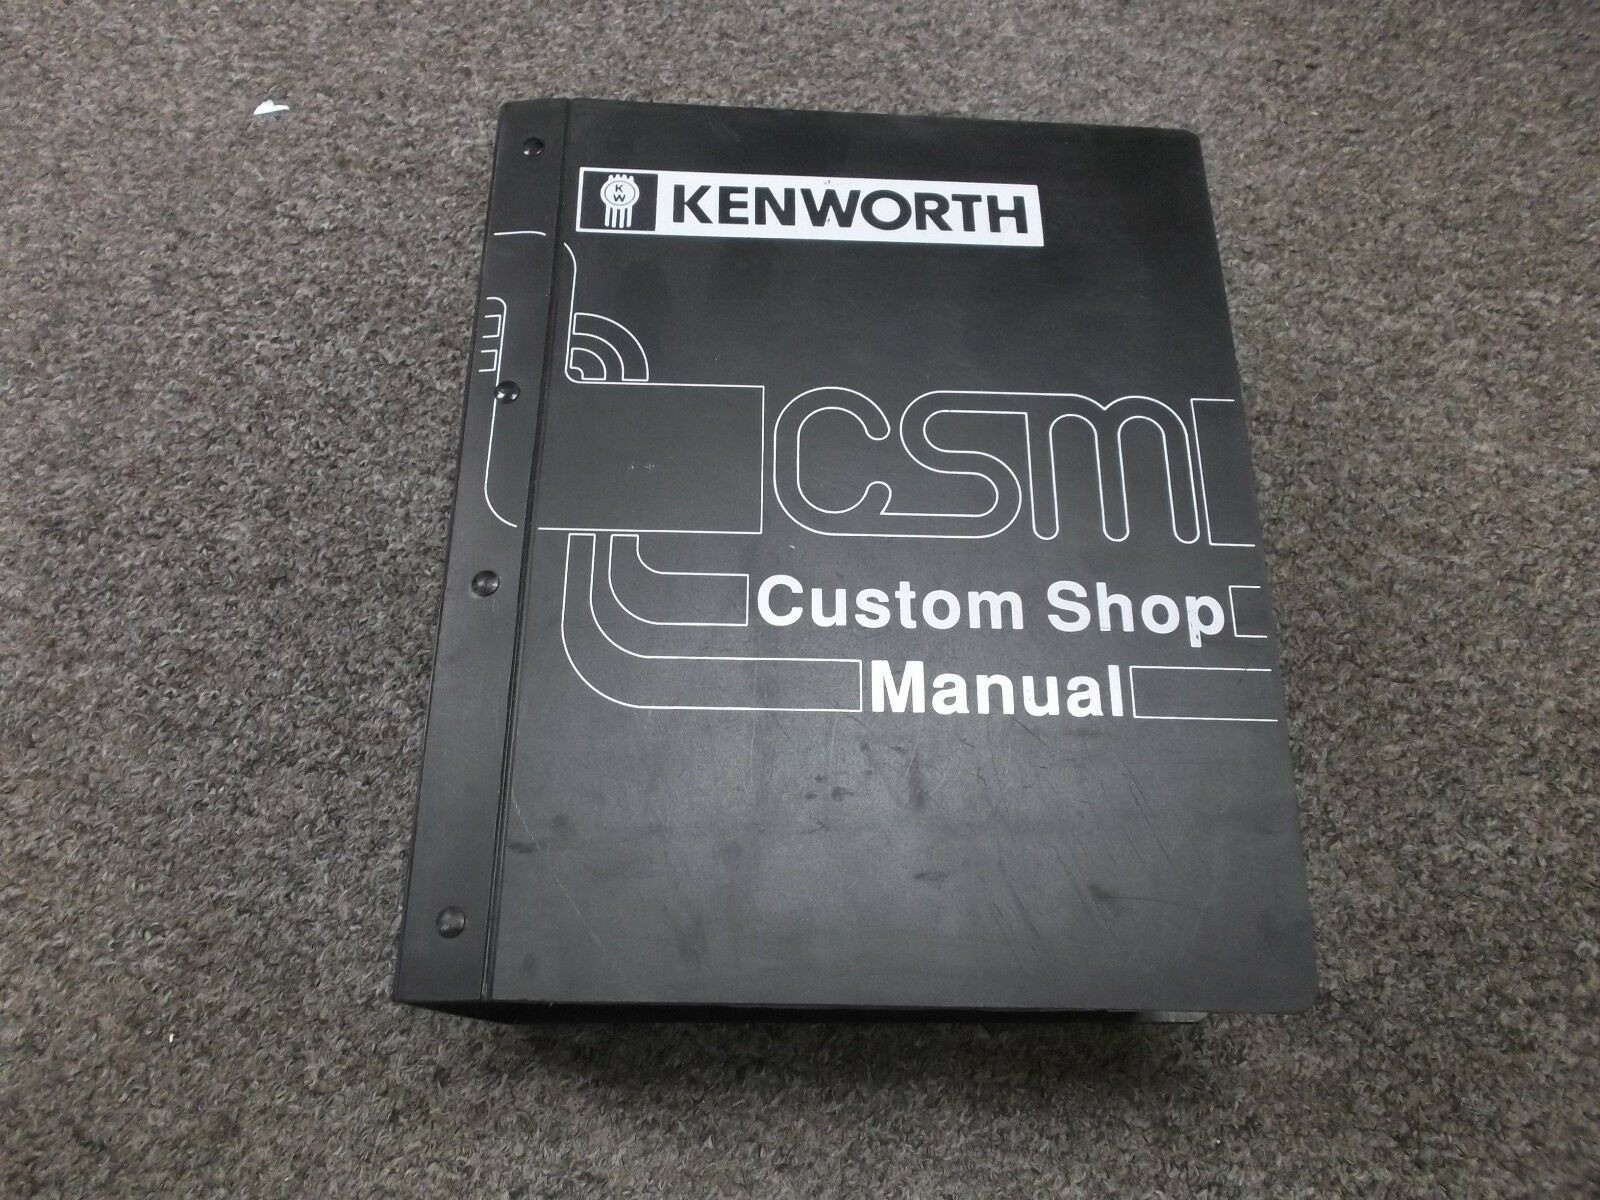 2000 2001 2002 2003 2004 2005 Kenworth T800 Semi Truck Service Repair Manual  | eBay